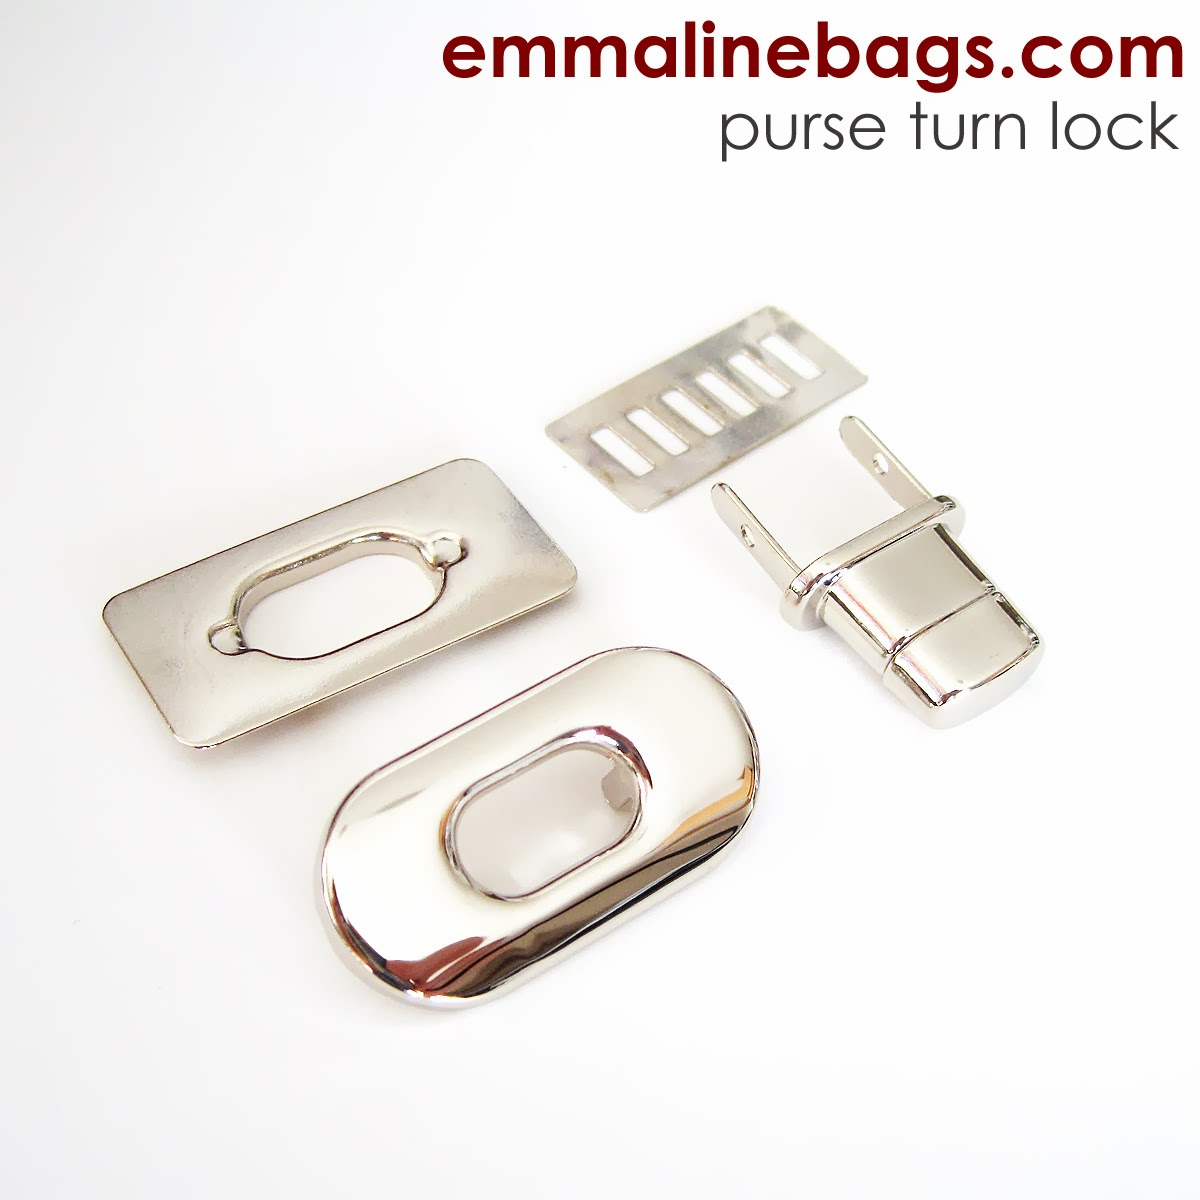 How To Install Purse Turn Locks And Flips In Bags Purses A Tutorial